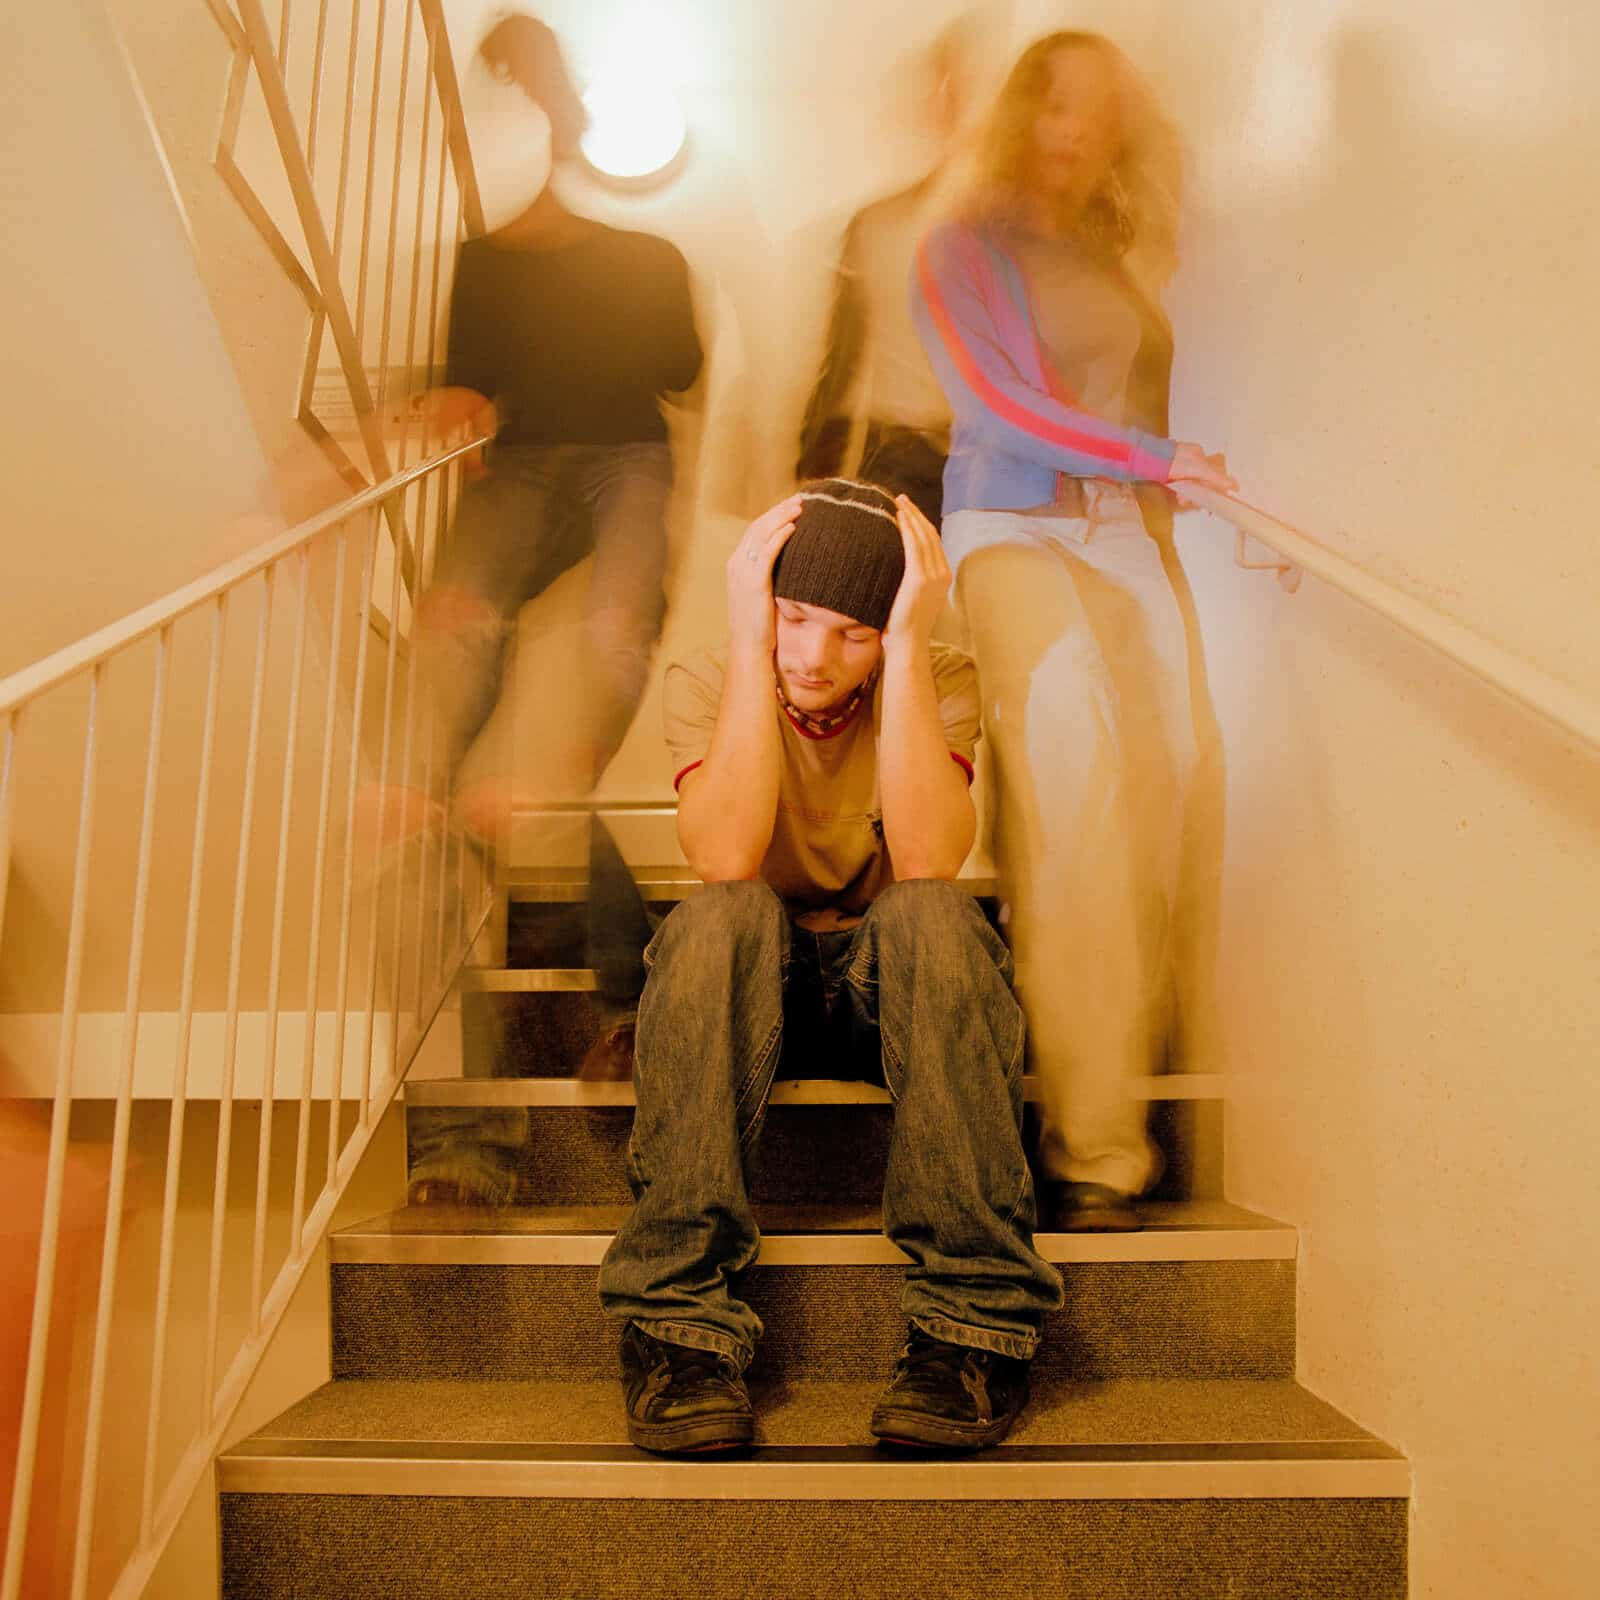 Relapse Prevention Know The Triggers And Warning Signs